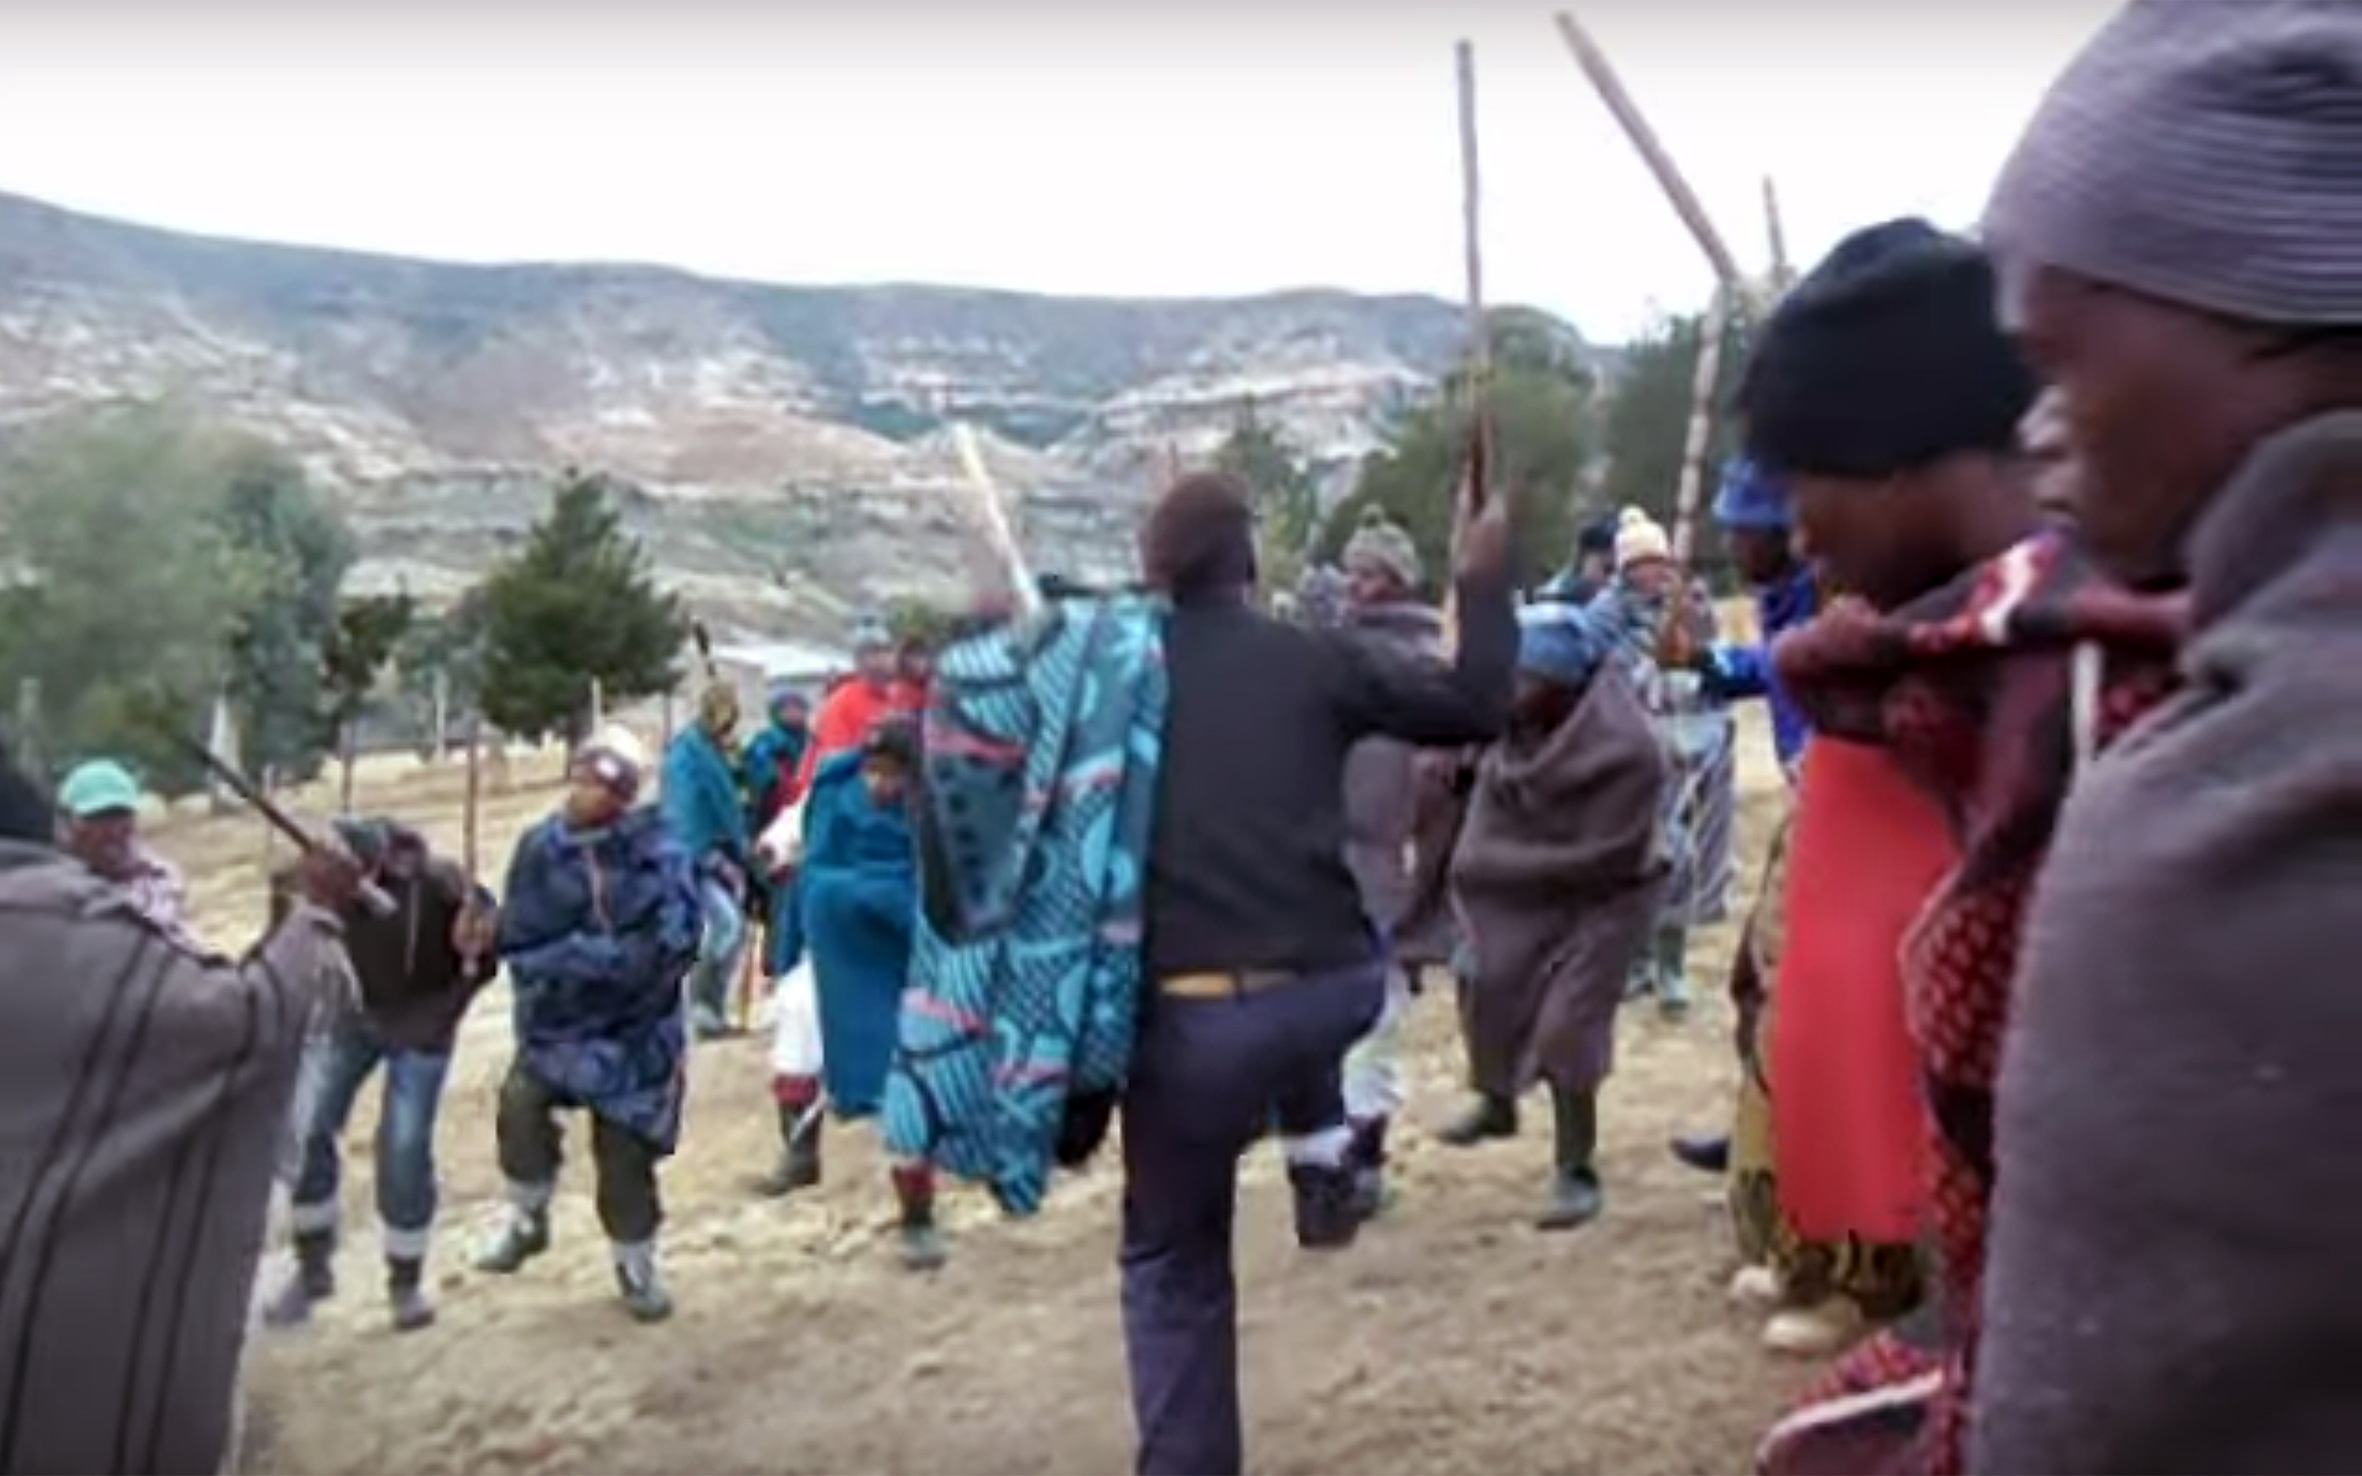 612.Mokorotlo / Lesotho - Mokorotlo refers to the traditional male dance performed by male initiates and elders of the Sotho tribes in Lesotho. Performed by men for the chief on important occasions, it is also taught as a song to youths at initiation school, serving to give them courage and motivation to persevere during their isolation in the mountains. Male initiates are expected know their ancestral praises, which are recited at coming-out initiation ceremonies. Mokorotlo is derived from the word ho korotla, meaning 'to grumble in a low voice', most appropriate during battle. In the past, Basotho men sang mokorotlo when they prepared to go to war.